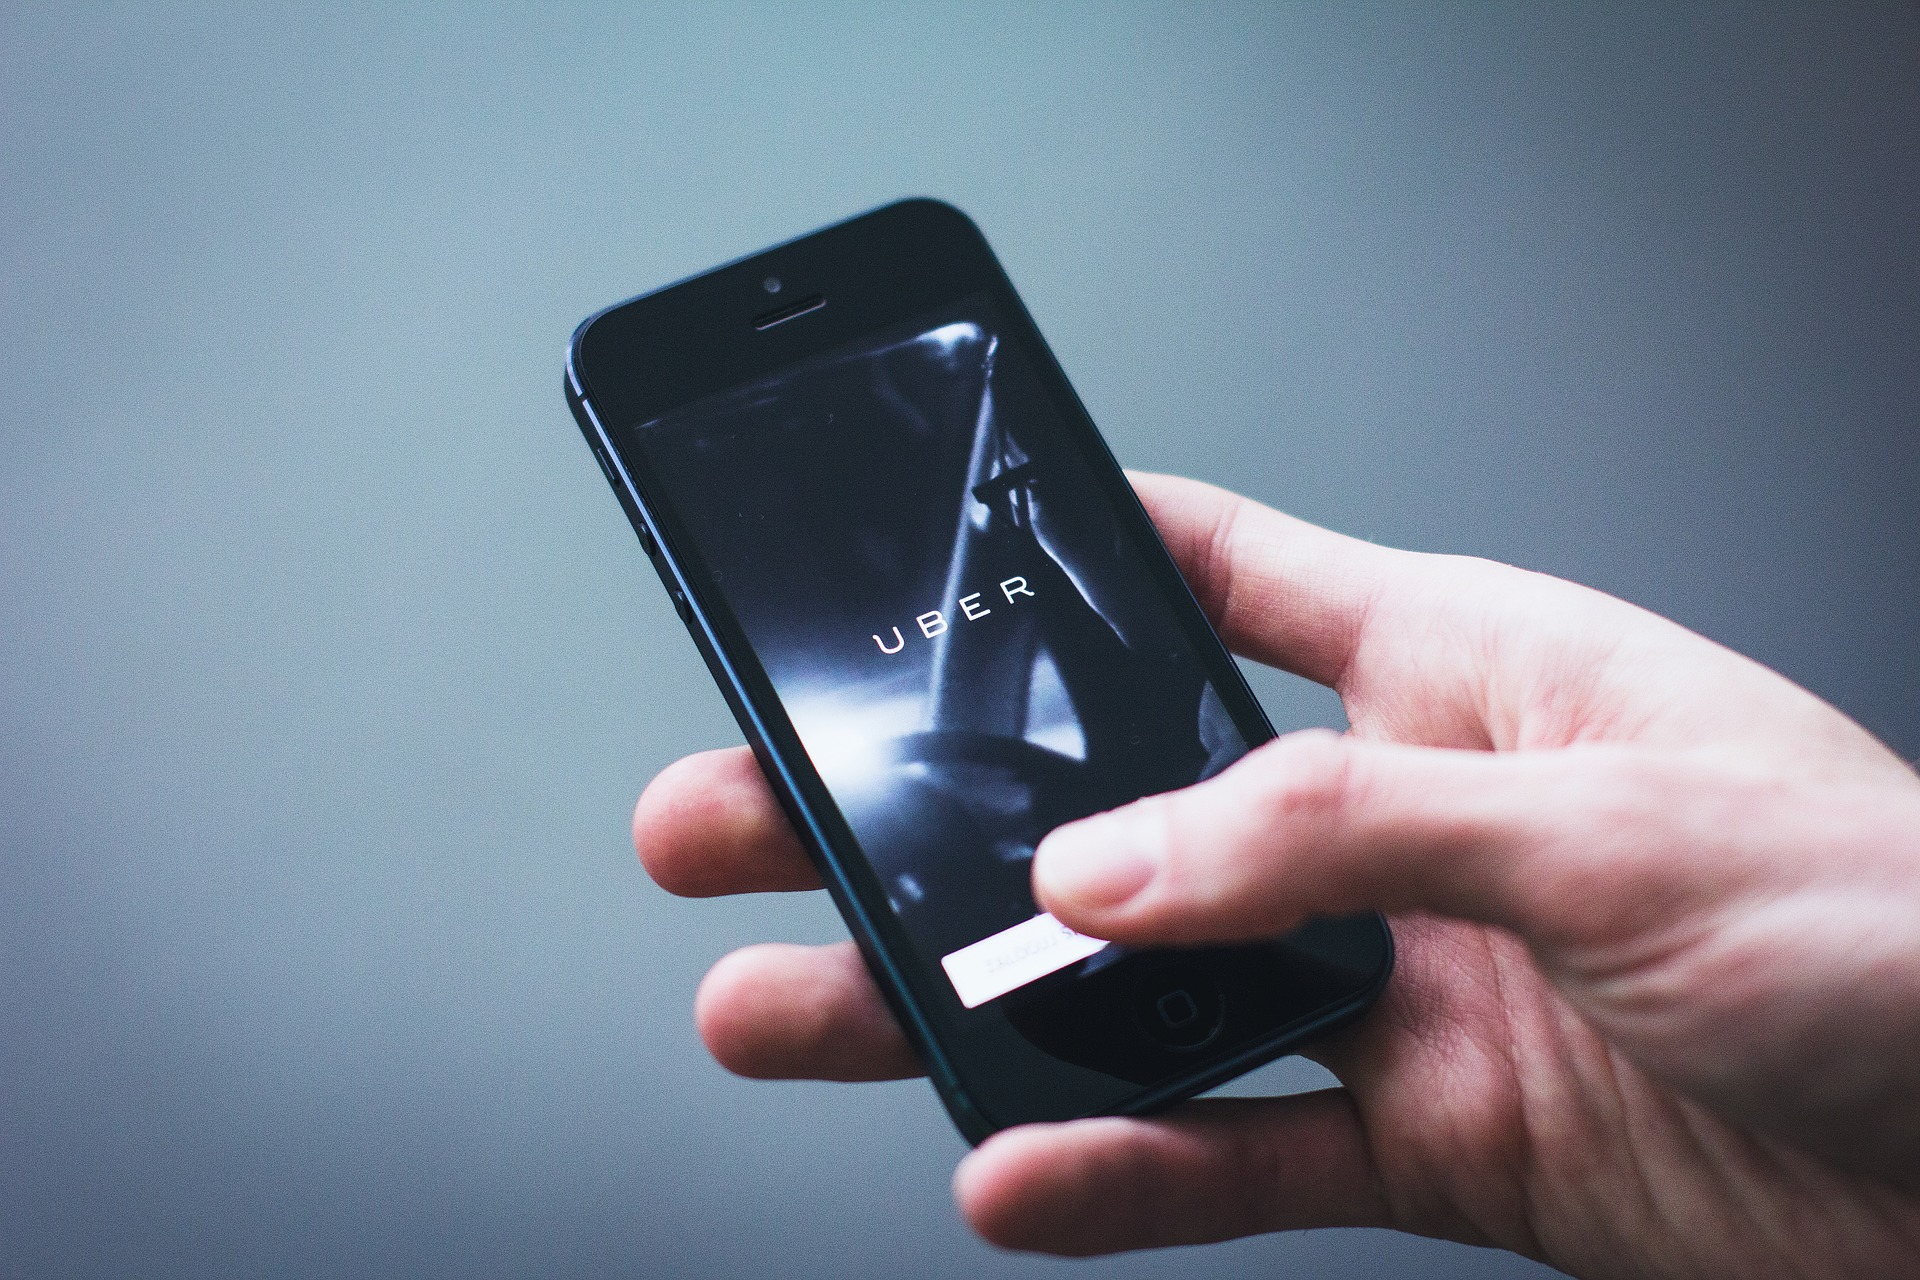 Closeup of a caucasian and holding and iPhone with the Uber App open, symbolizing the need for a liability lawyer in personal injury cases.